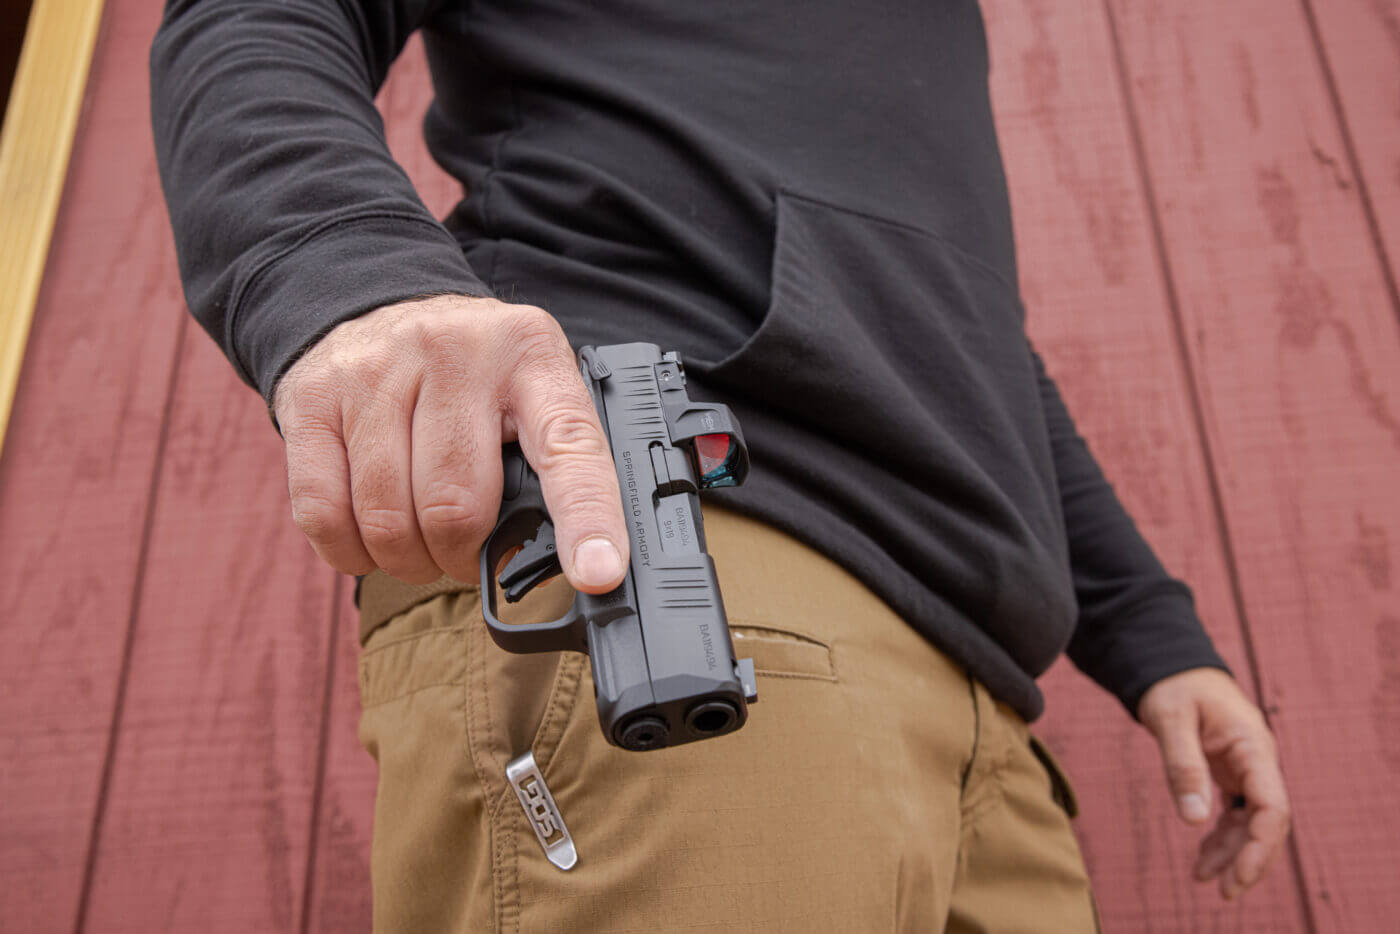 Man carrying a Hellcat pistol in his right hand